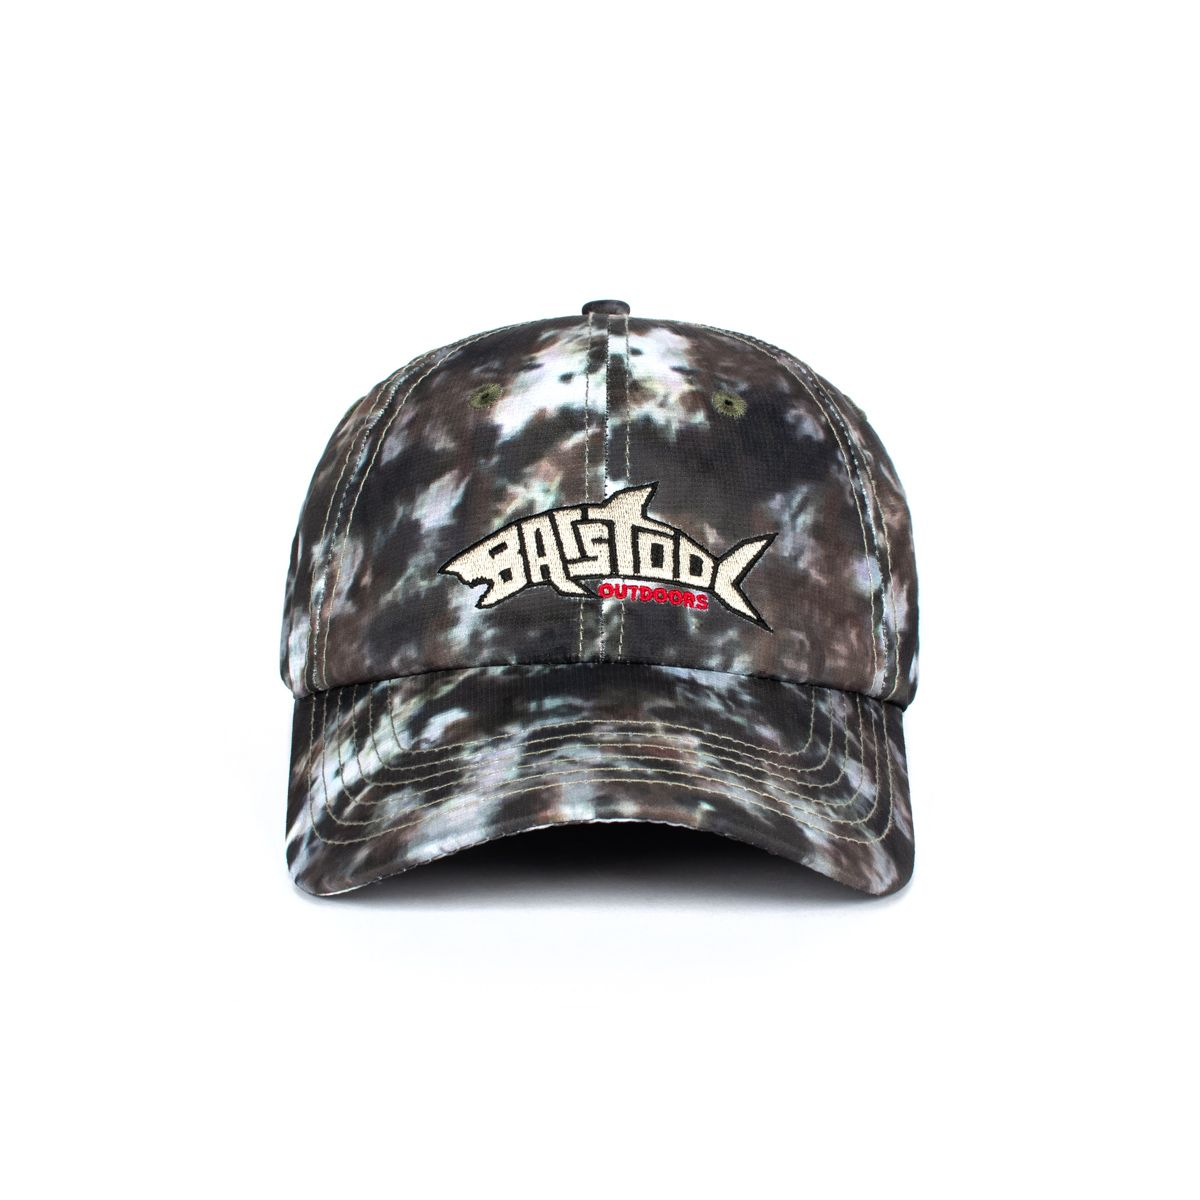 Barstool Outdoors Tie Dye Performance Hat